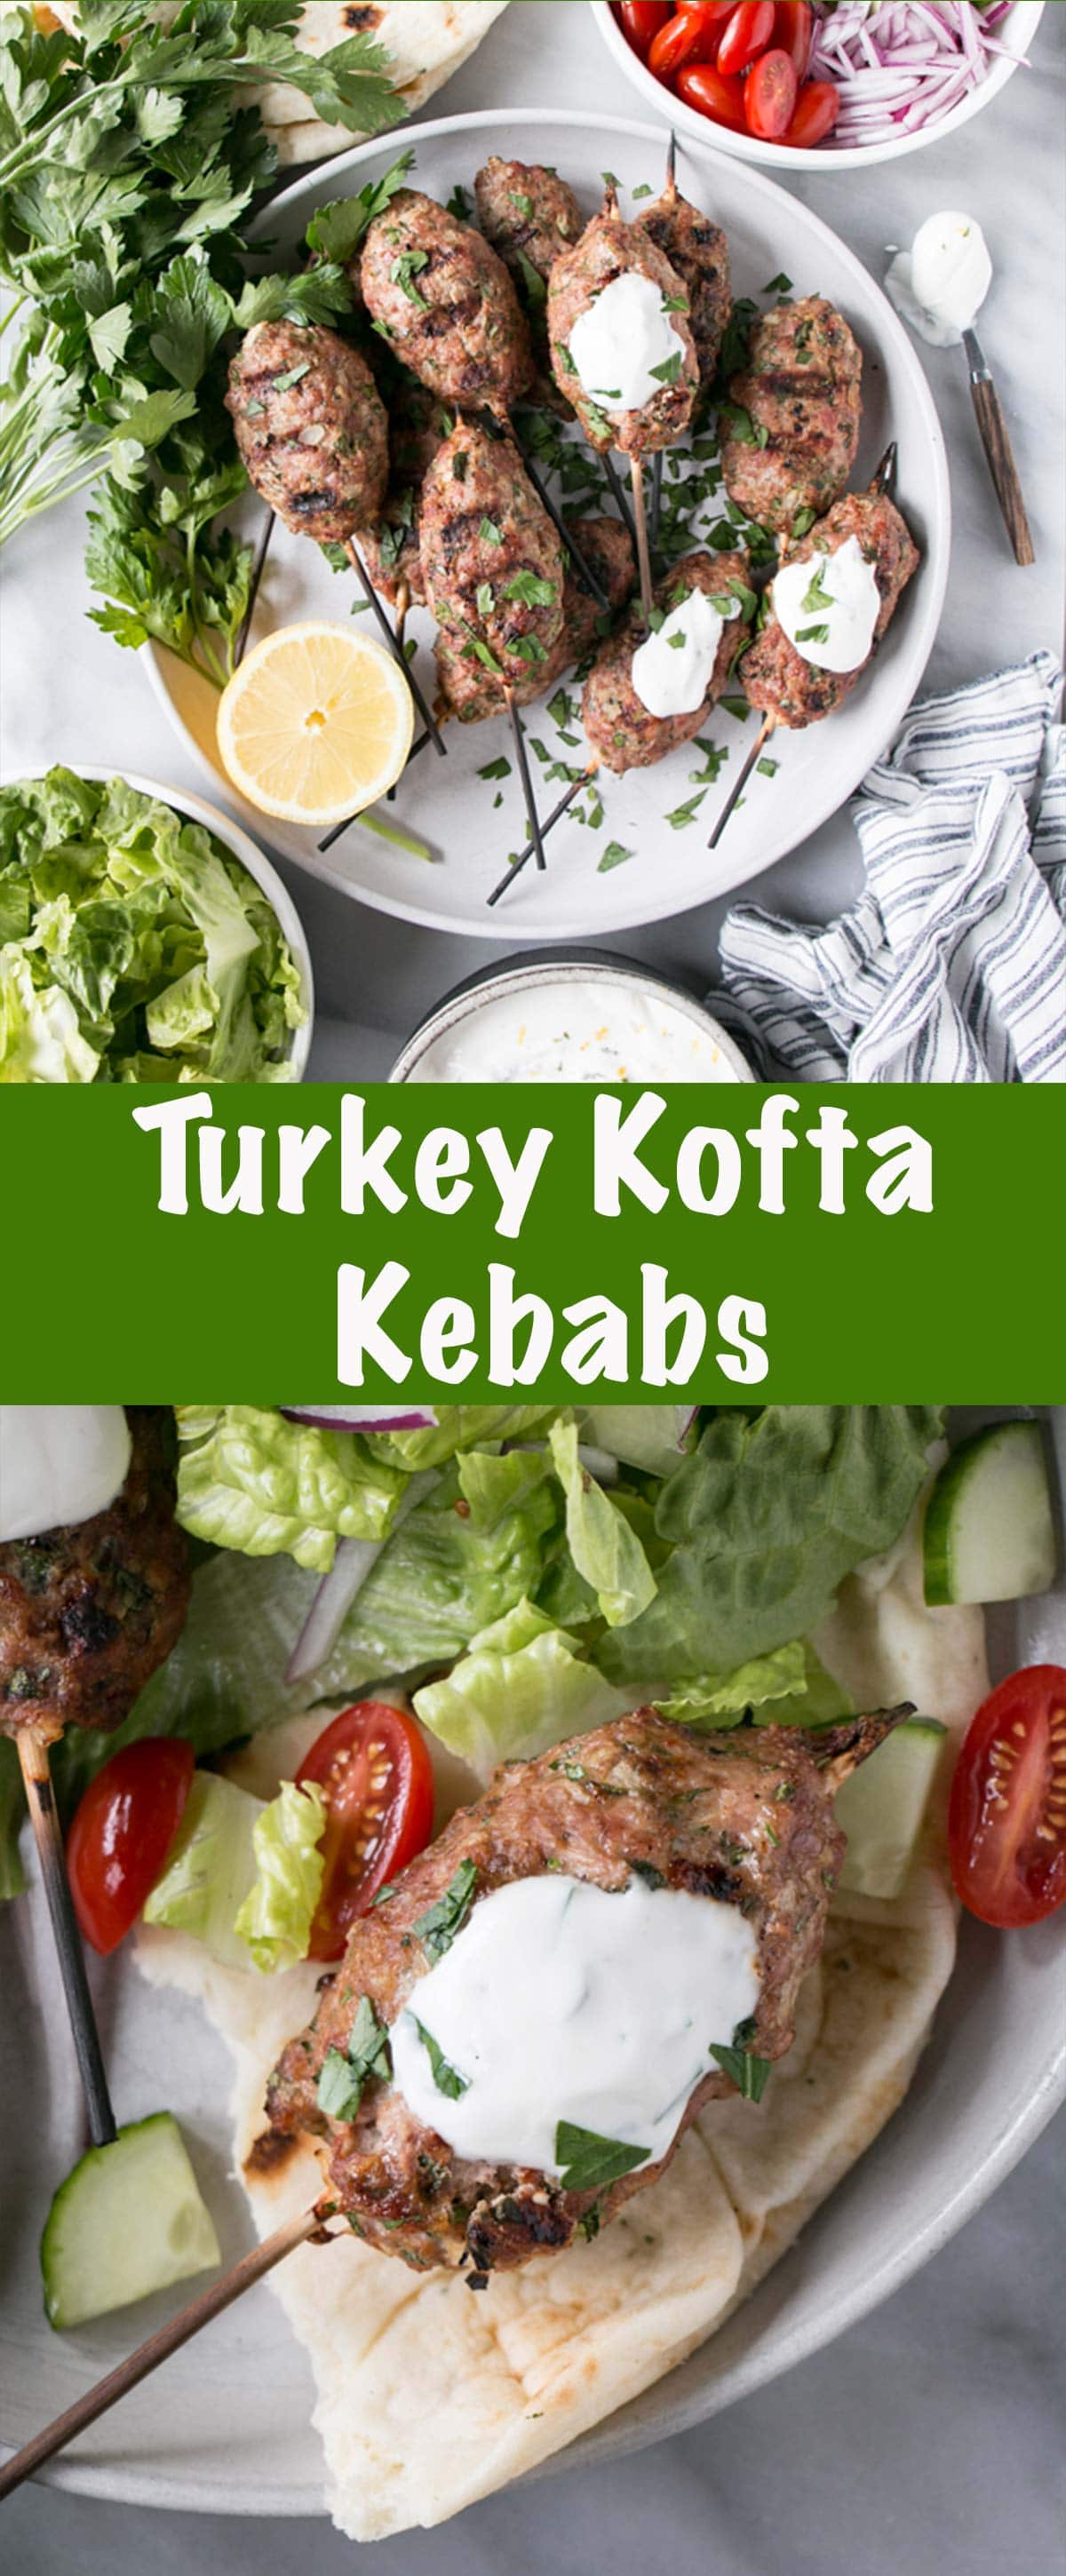 Turkey Kofta Kebabs Long PIn.